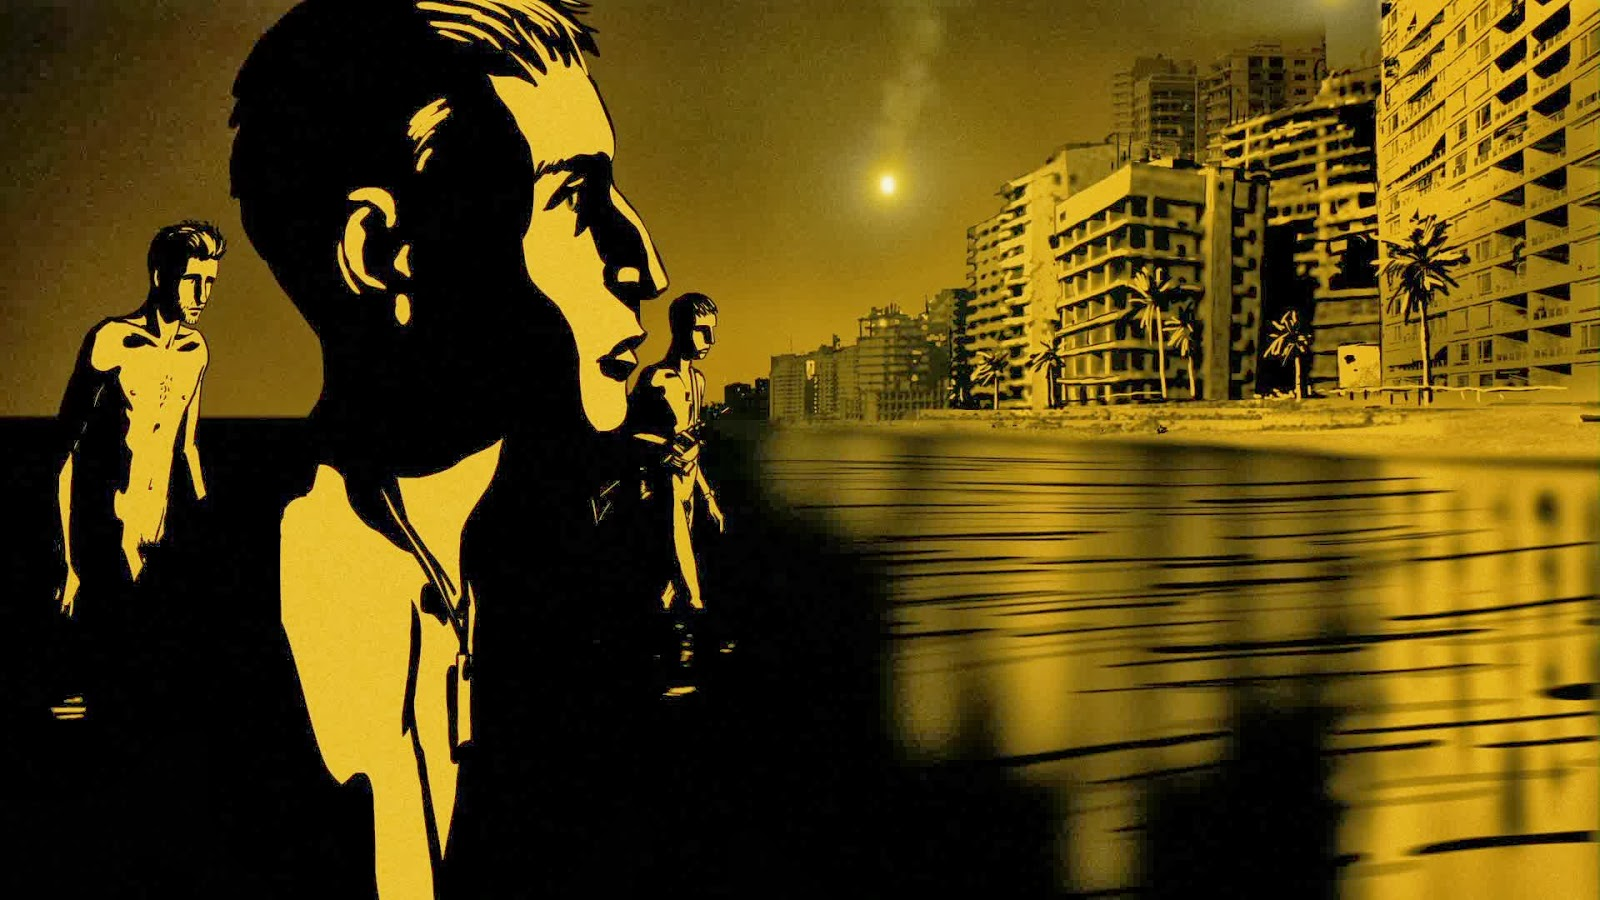 documentary analysis waltz with bashir Director ari folman's animated, quasi-documentary waltz with bashir follows the filmmaker's emotional attempt to decipher the horrors that unfolded one night in september of 1982, when christian militia members massacred more than 3,000 palestinian refugees in the heart of beirut as israeli.